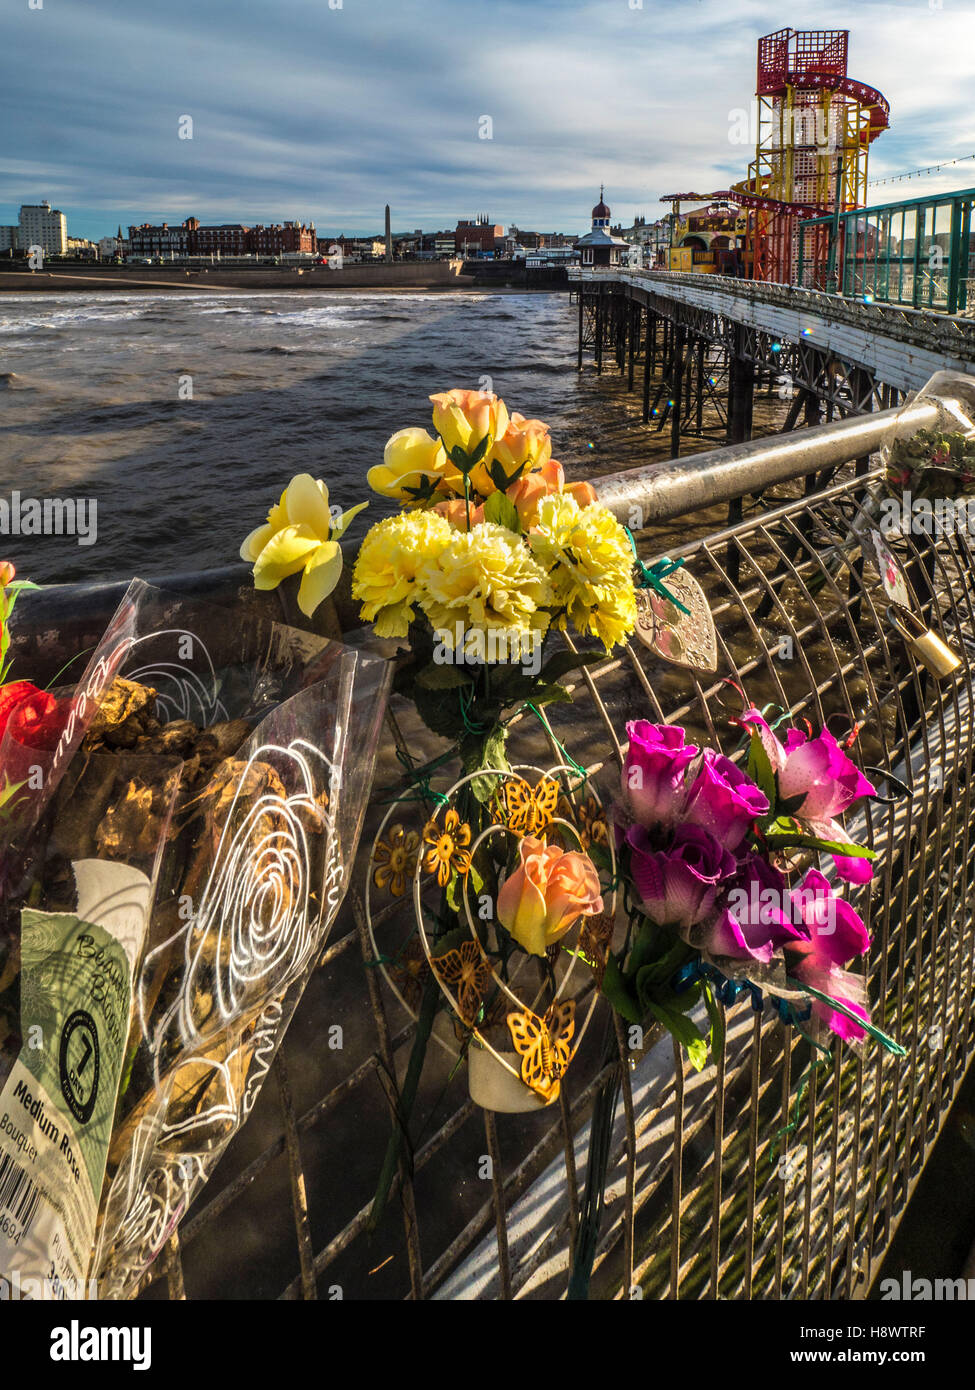 Flowers in memory of dead relatives and freinds tied to railings on North Pier, Blackpool, Lancashire, UK. - Stock Image